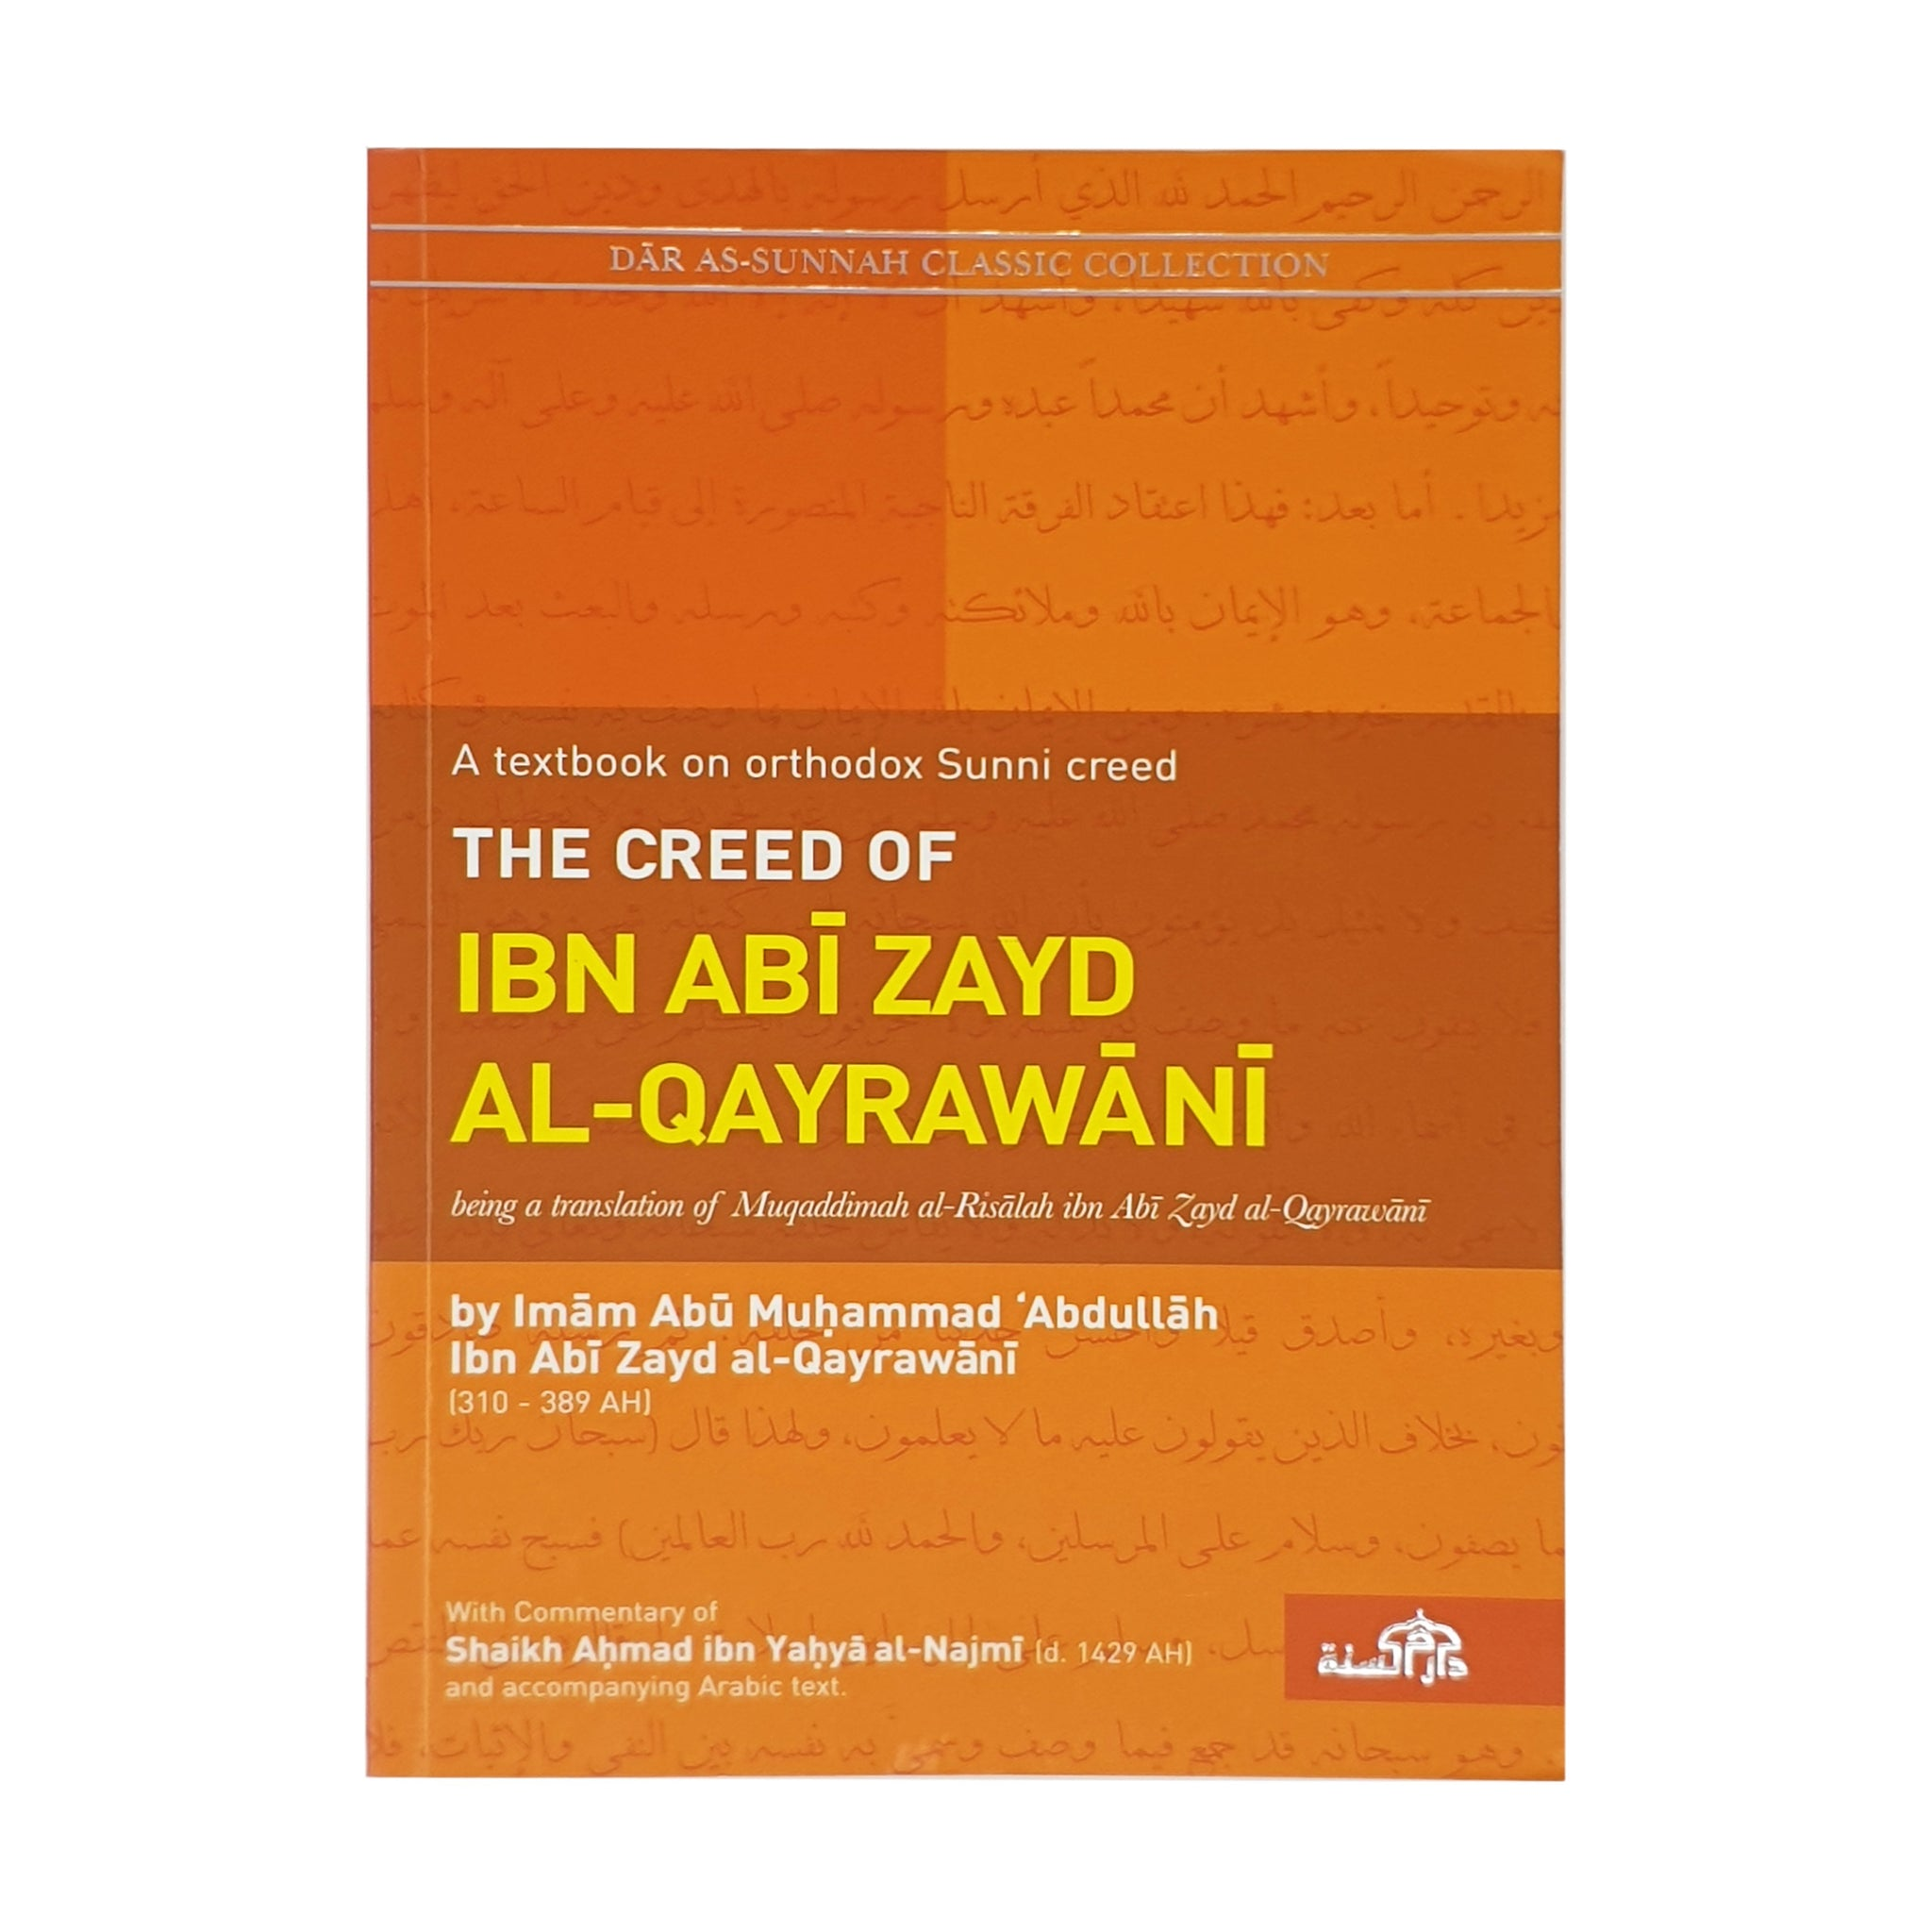 The Creed of Ibn Abi Zayd Al-Qayrawani